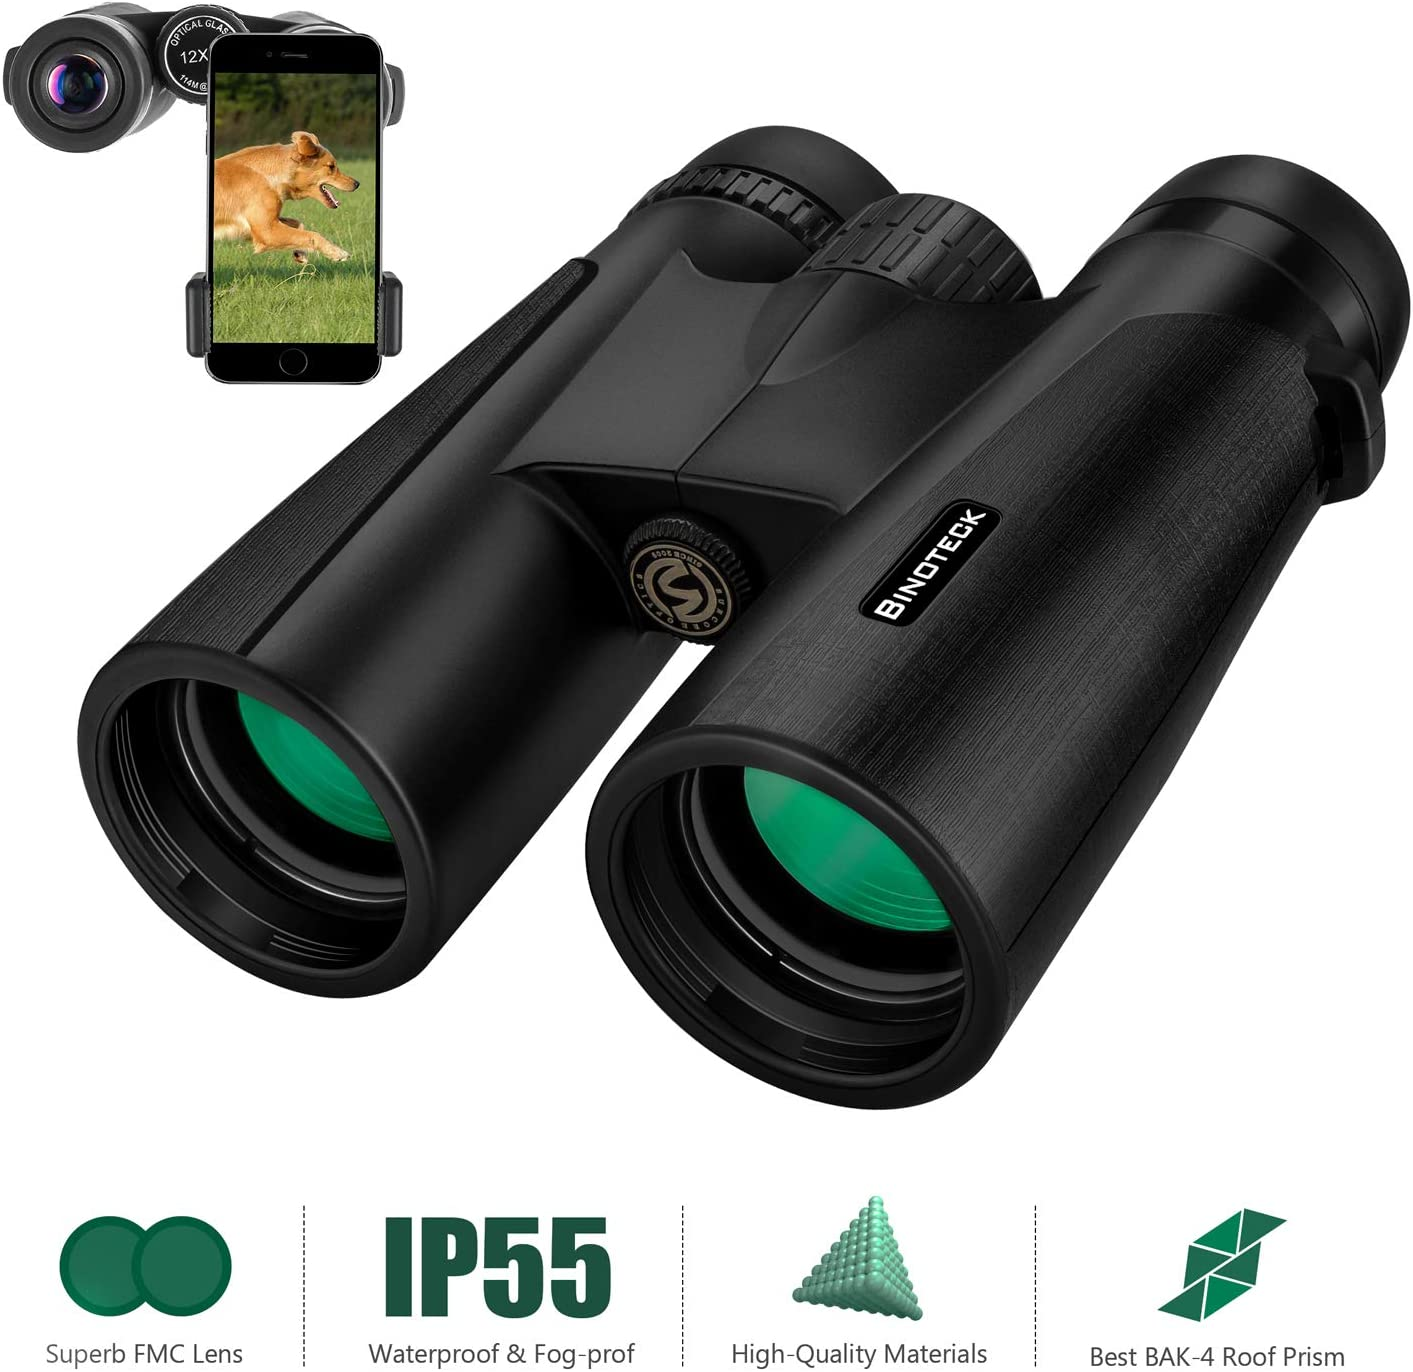 Binoteck 12×42 Binoculars for Adults Clear Weak Light Vision Compact HD Binoculars for Bird-Watching Travel Hunting Concerts Opera Sports Bak4 Prism Fmc Lens with Phone Mount Strap Carrying Bag, Black